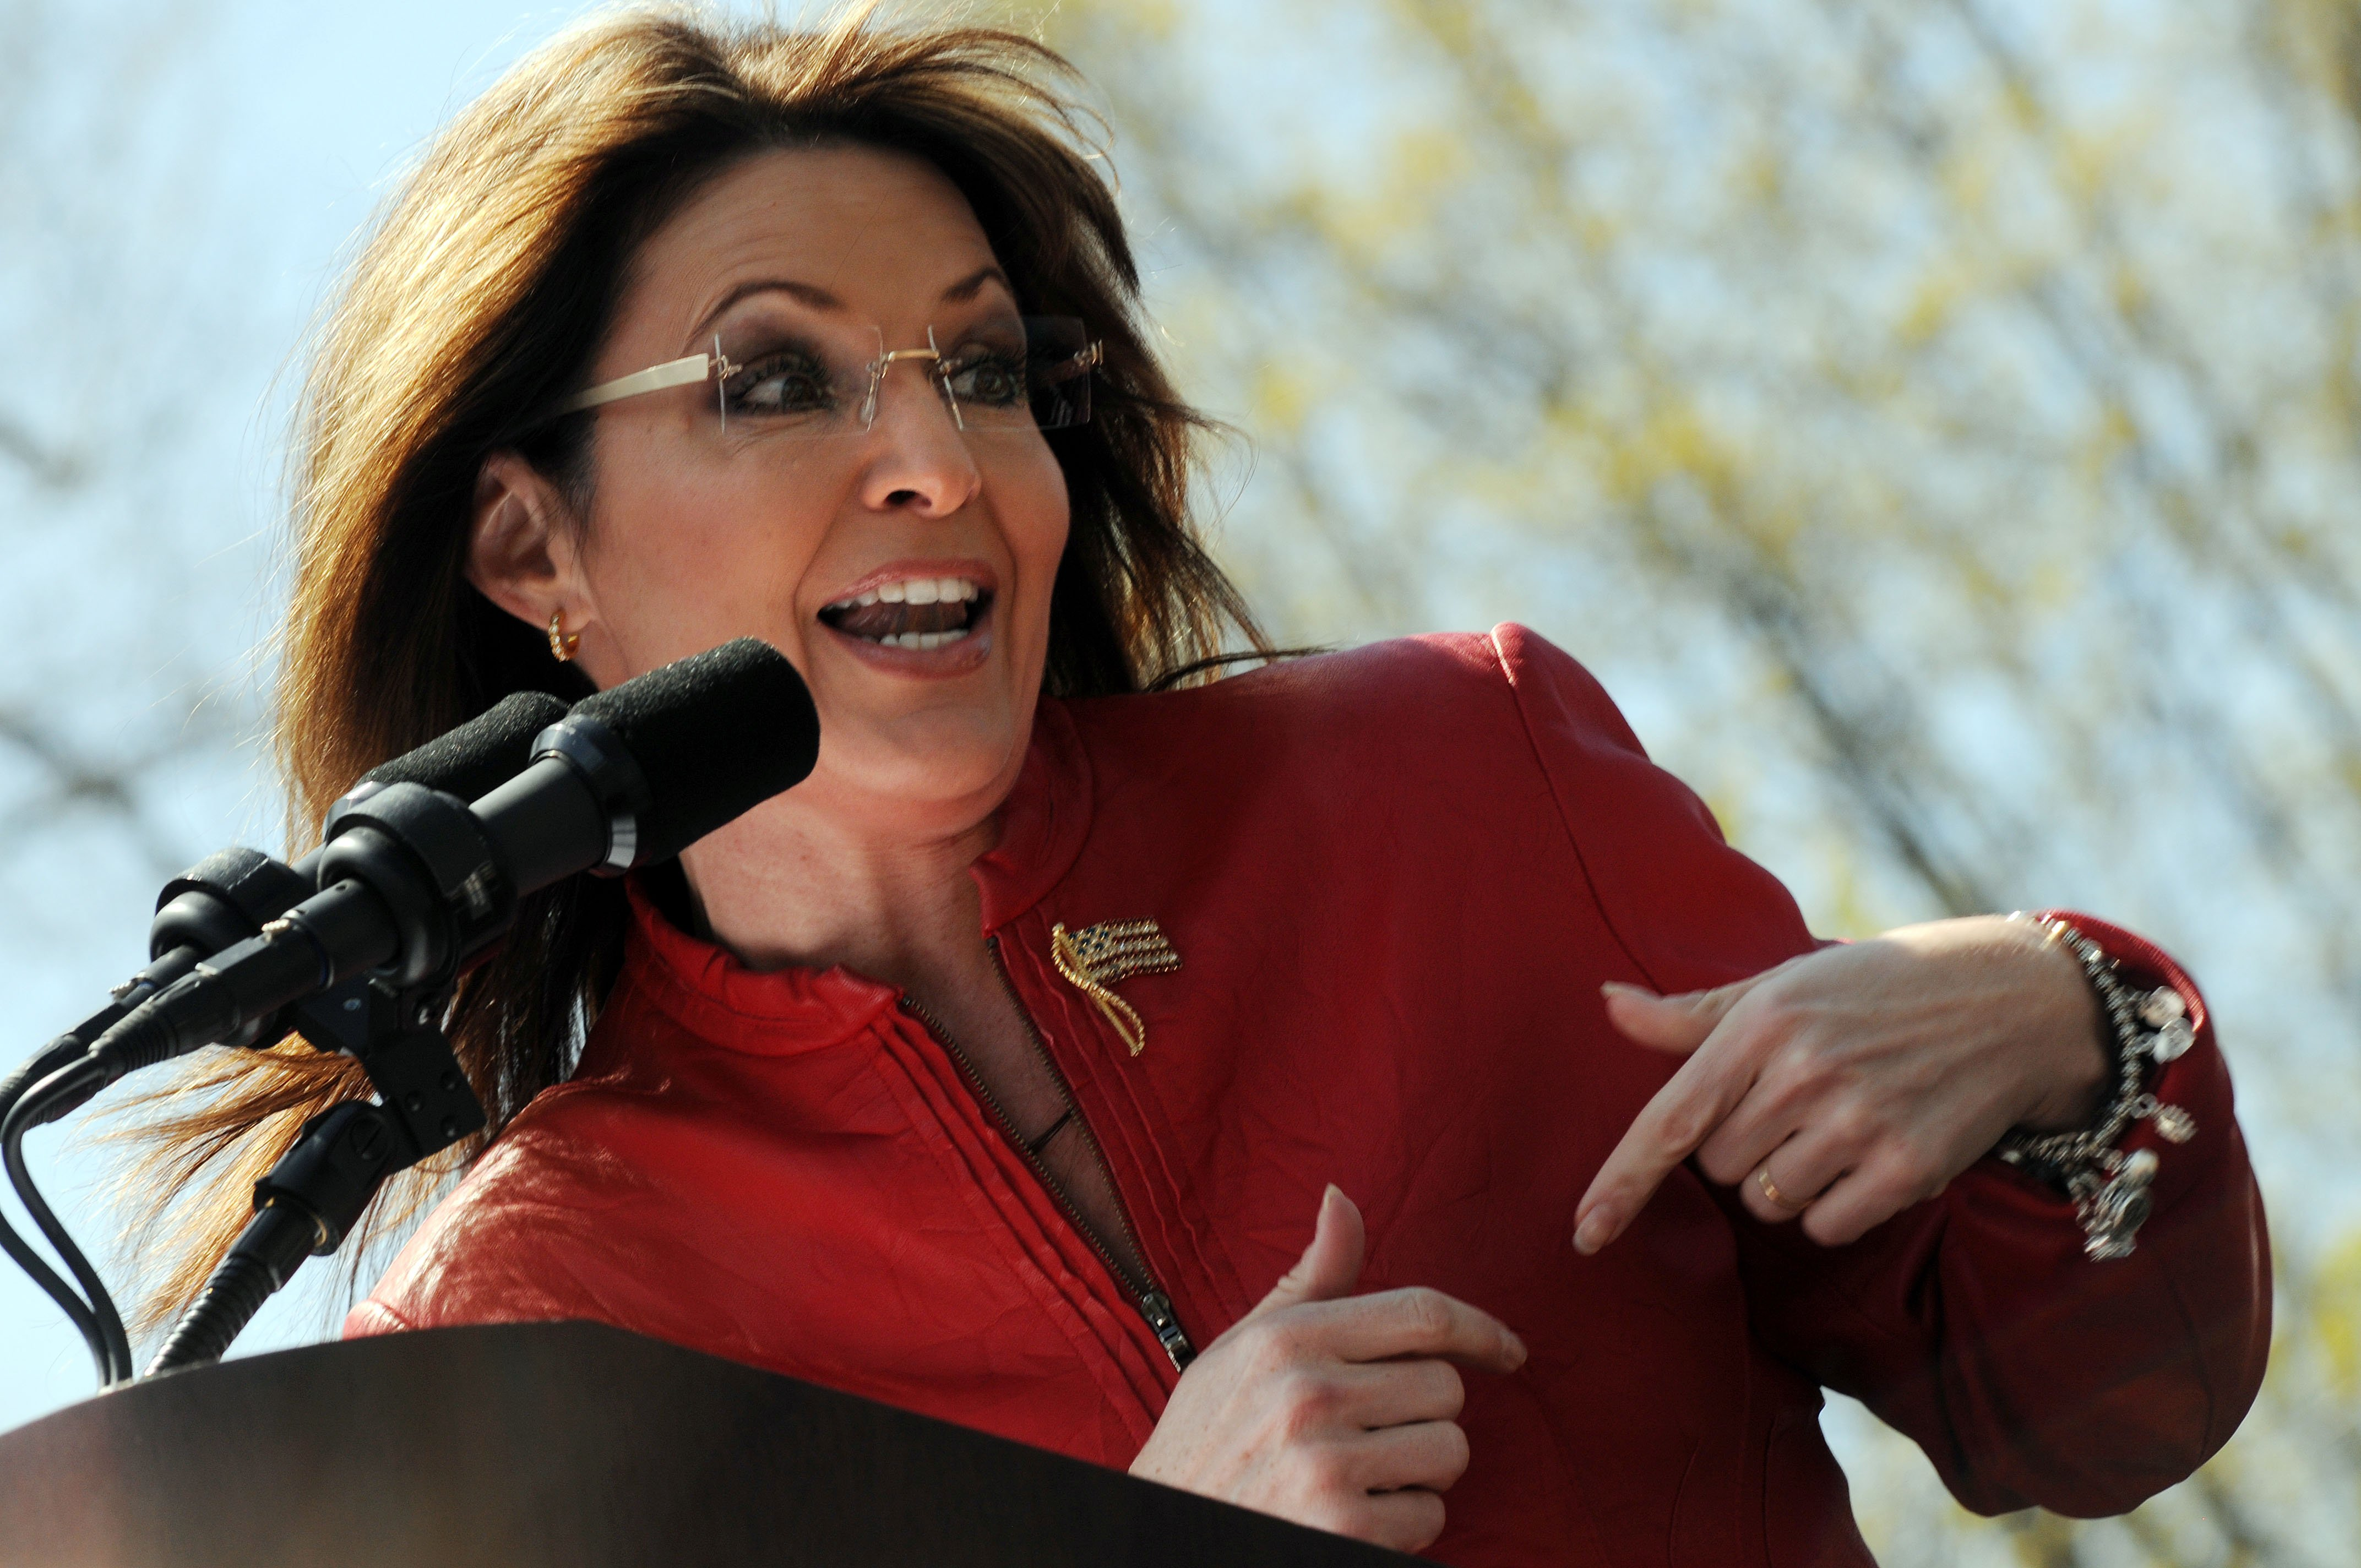 Sarah Palin Indicates She'd Love to Run for Higher Office Again